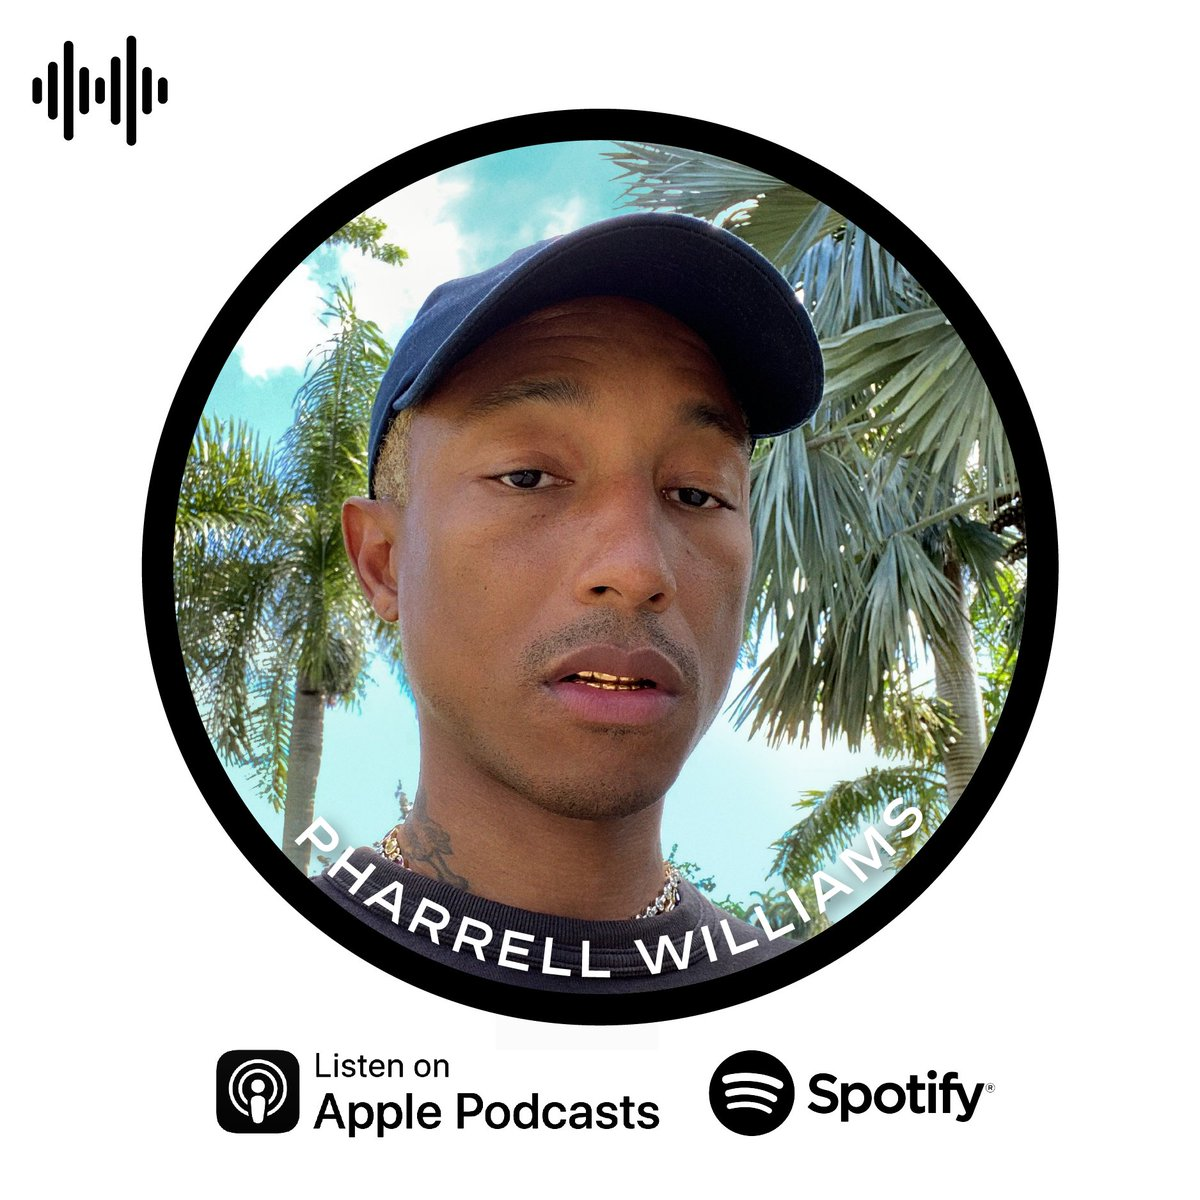 How do we imagine new worlds? Pharrell Williams joins stage designer Es Devlin for an intimate conversation about the future of culture on the new podcast series CHANEL Connects. Listen now on wherever you get your podcasts. #CHANELConnects #CHANEL #EsDevlin #PharrellWilliams